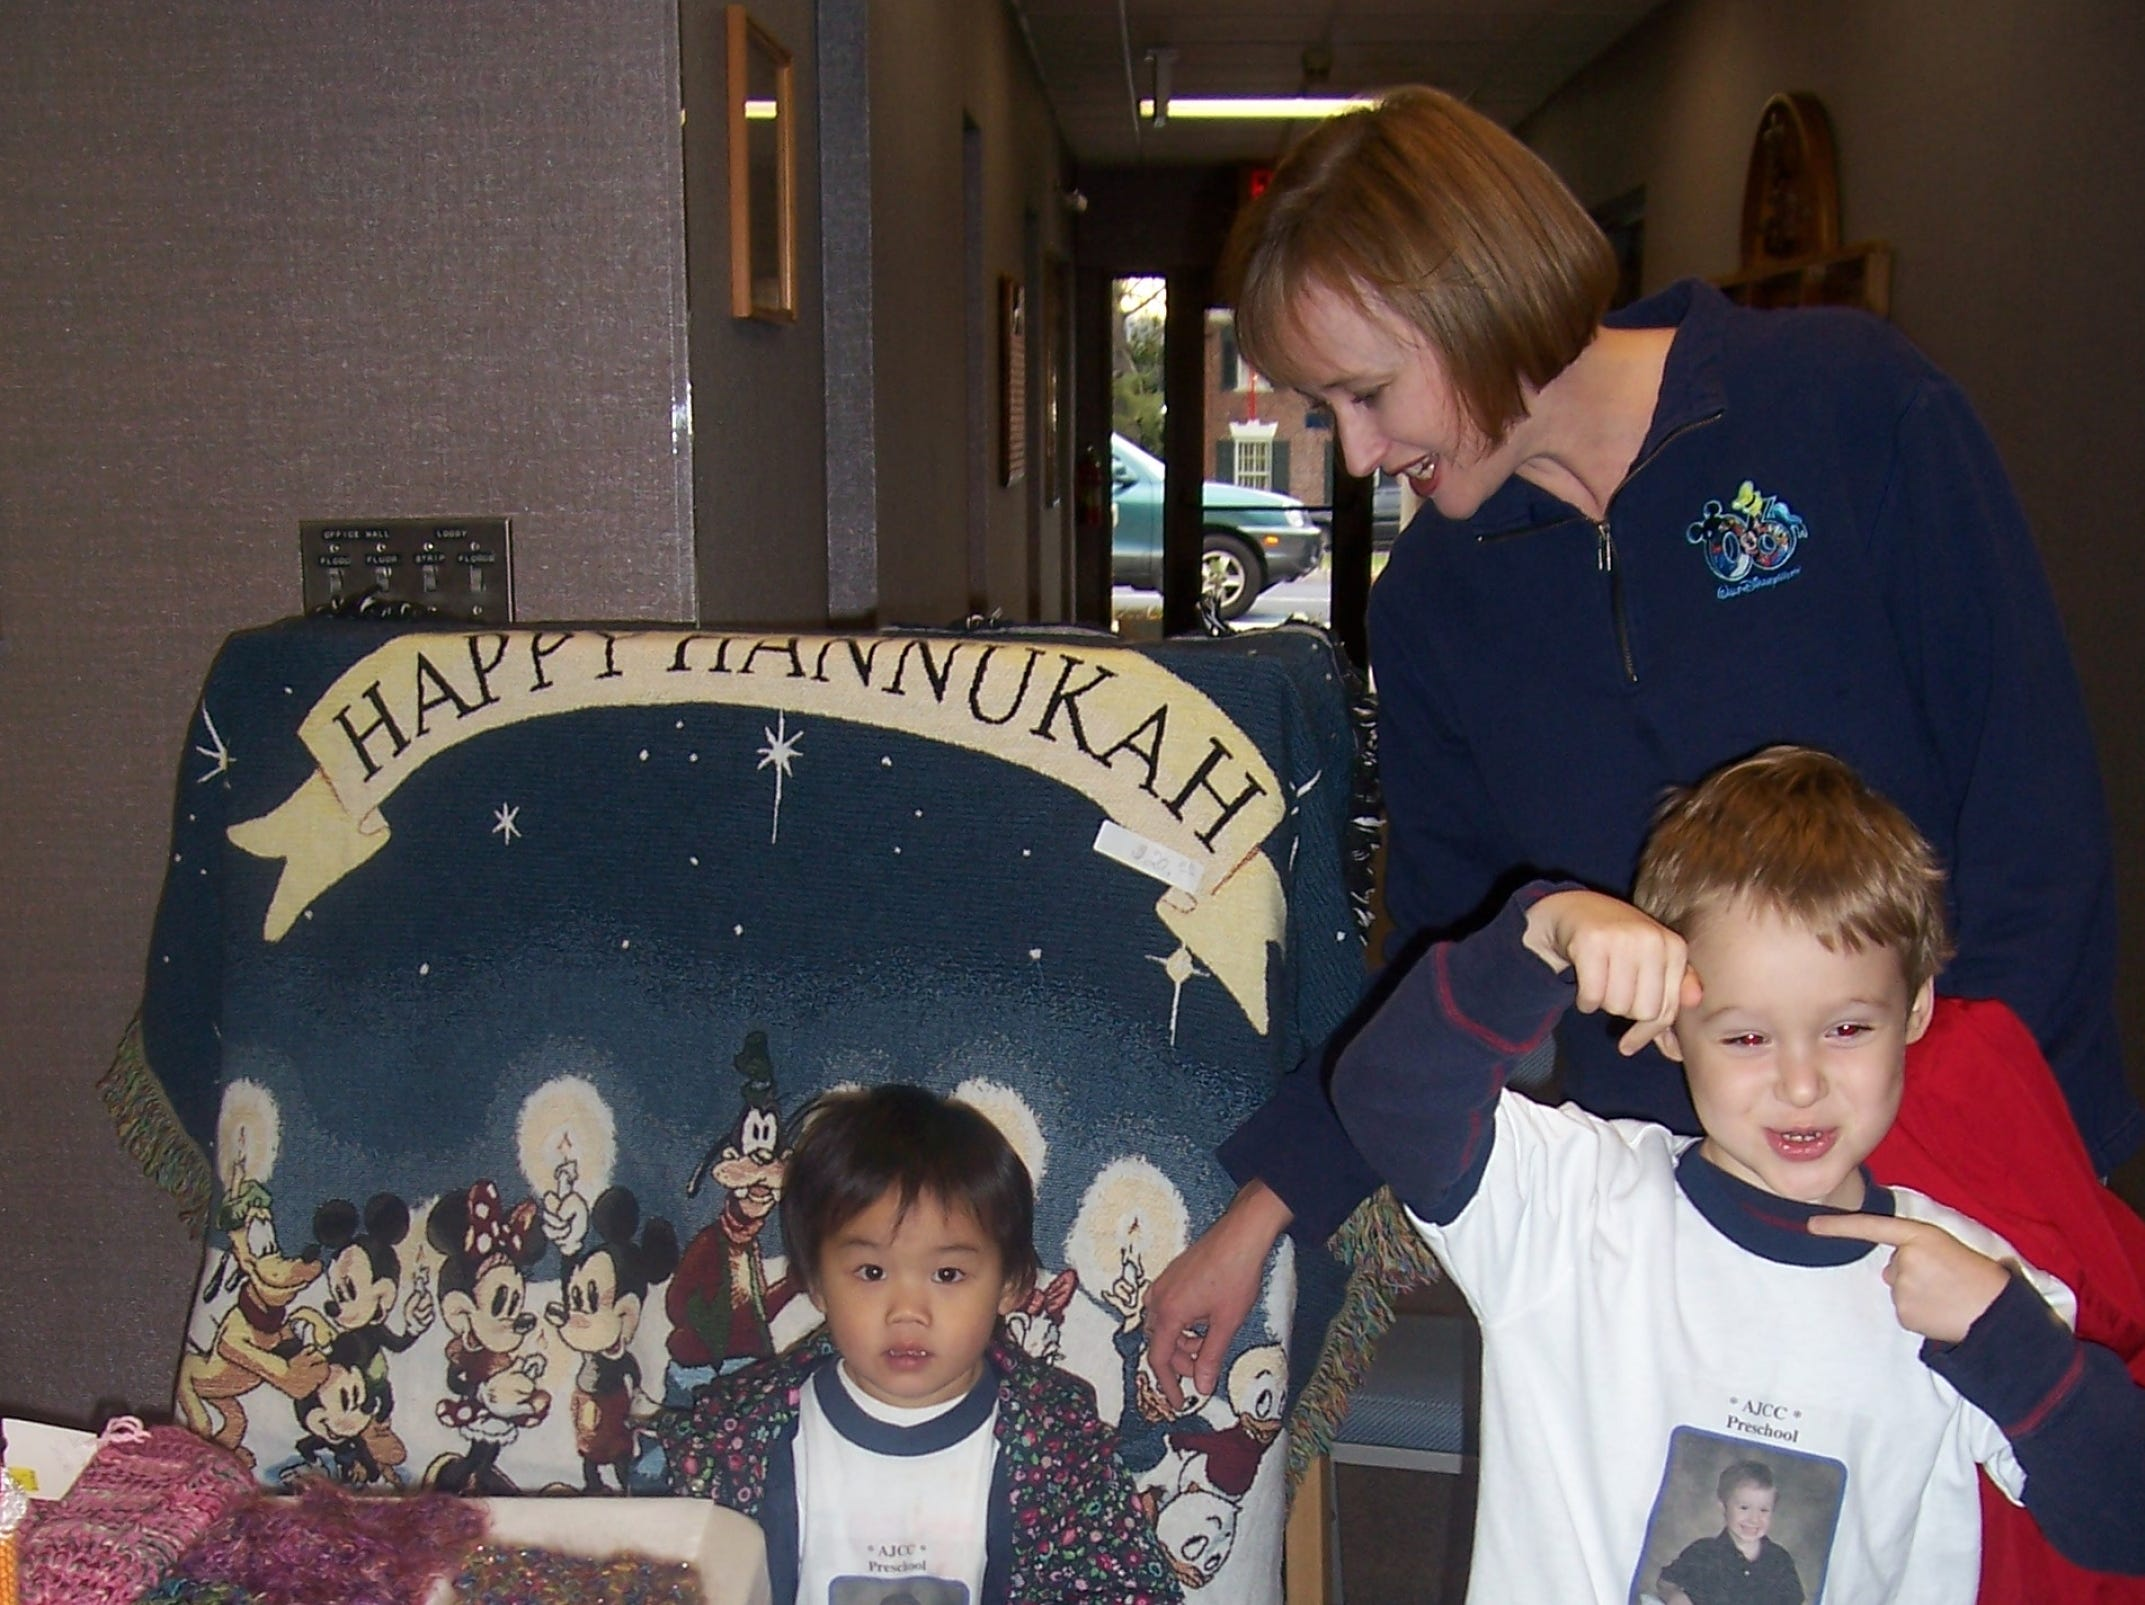 Lorie Hirsh and her children, Ben Hirsh, 4,and Lily Hirsh, 2, are making the rounds of the Chanukah Crafts Bazaar sponsored by the Sisterhood of Temple Beth El. The youngsters were quite taken with a Disney Happy Hanukkah throw.